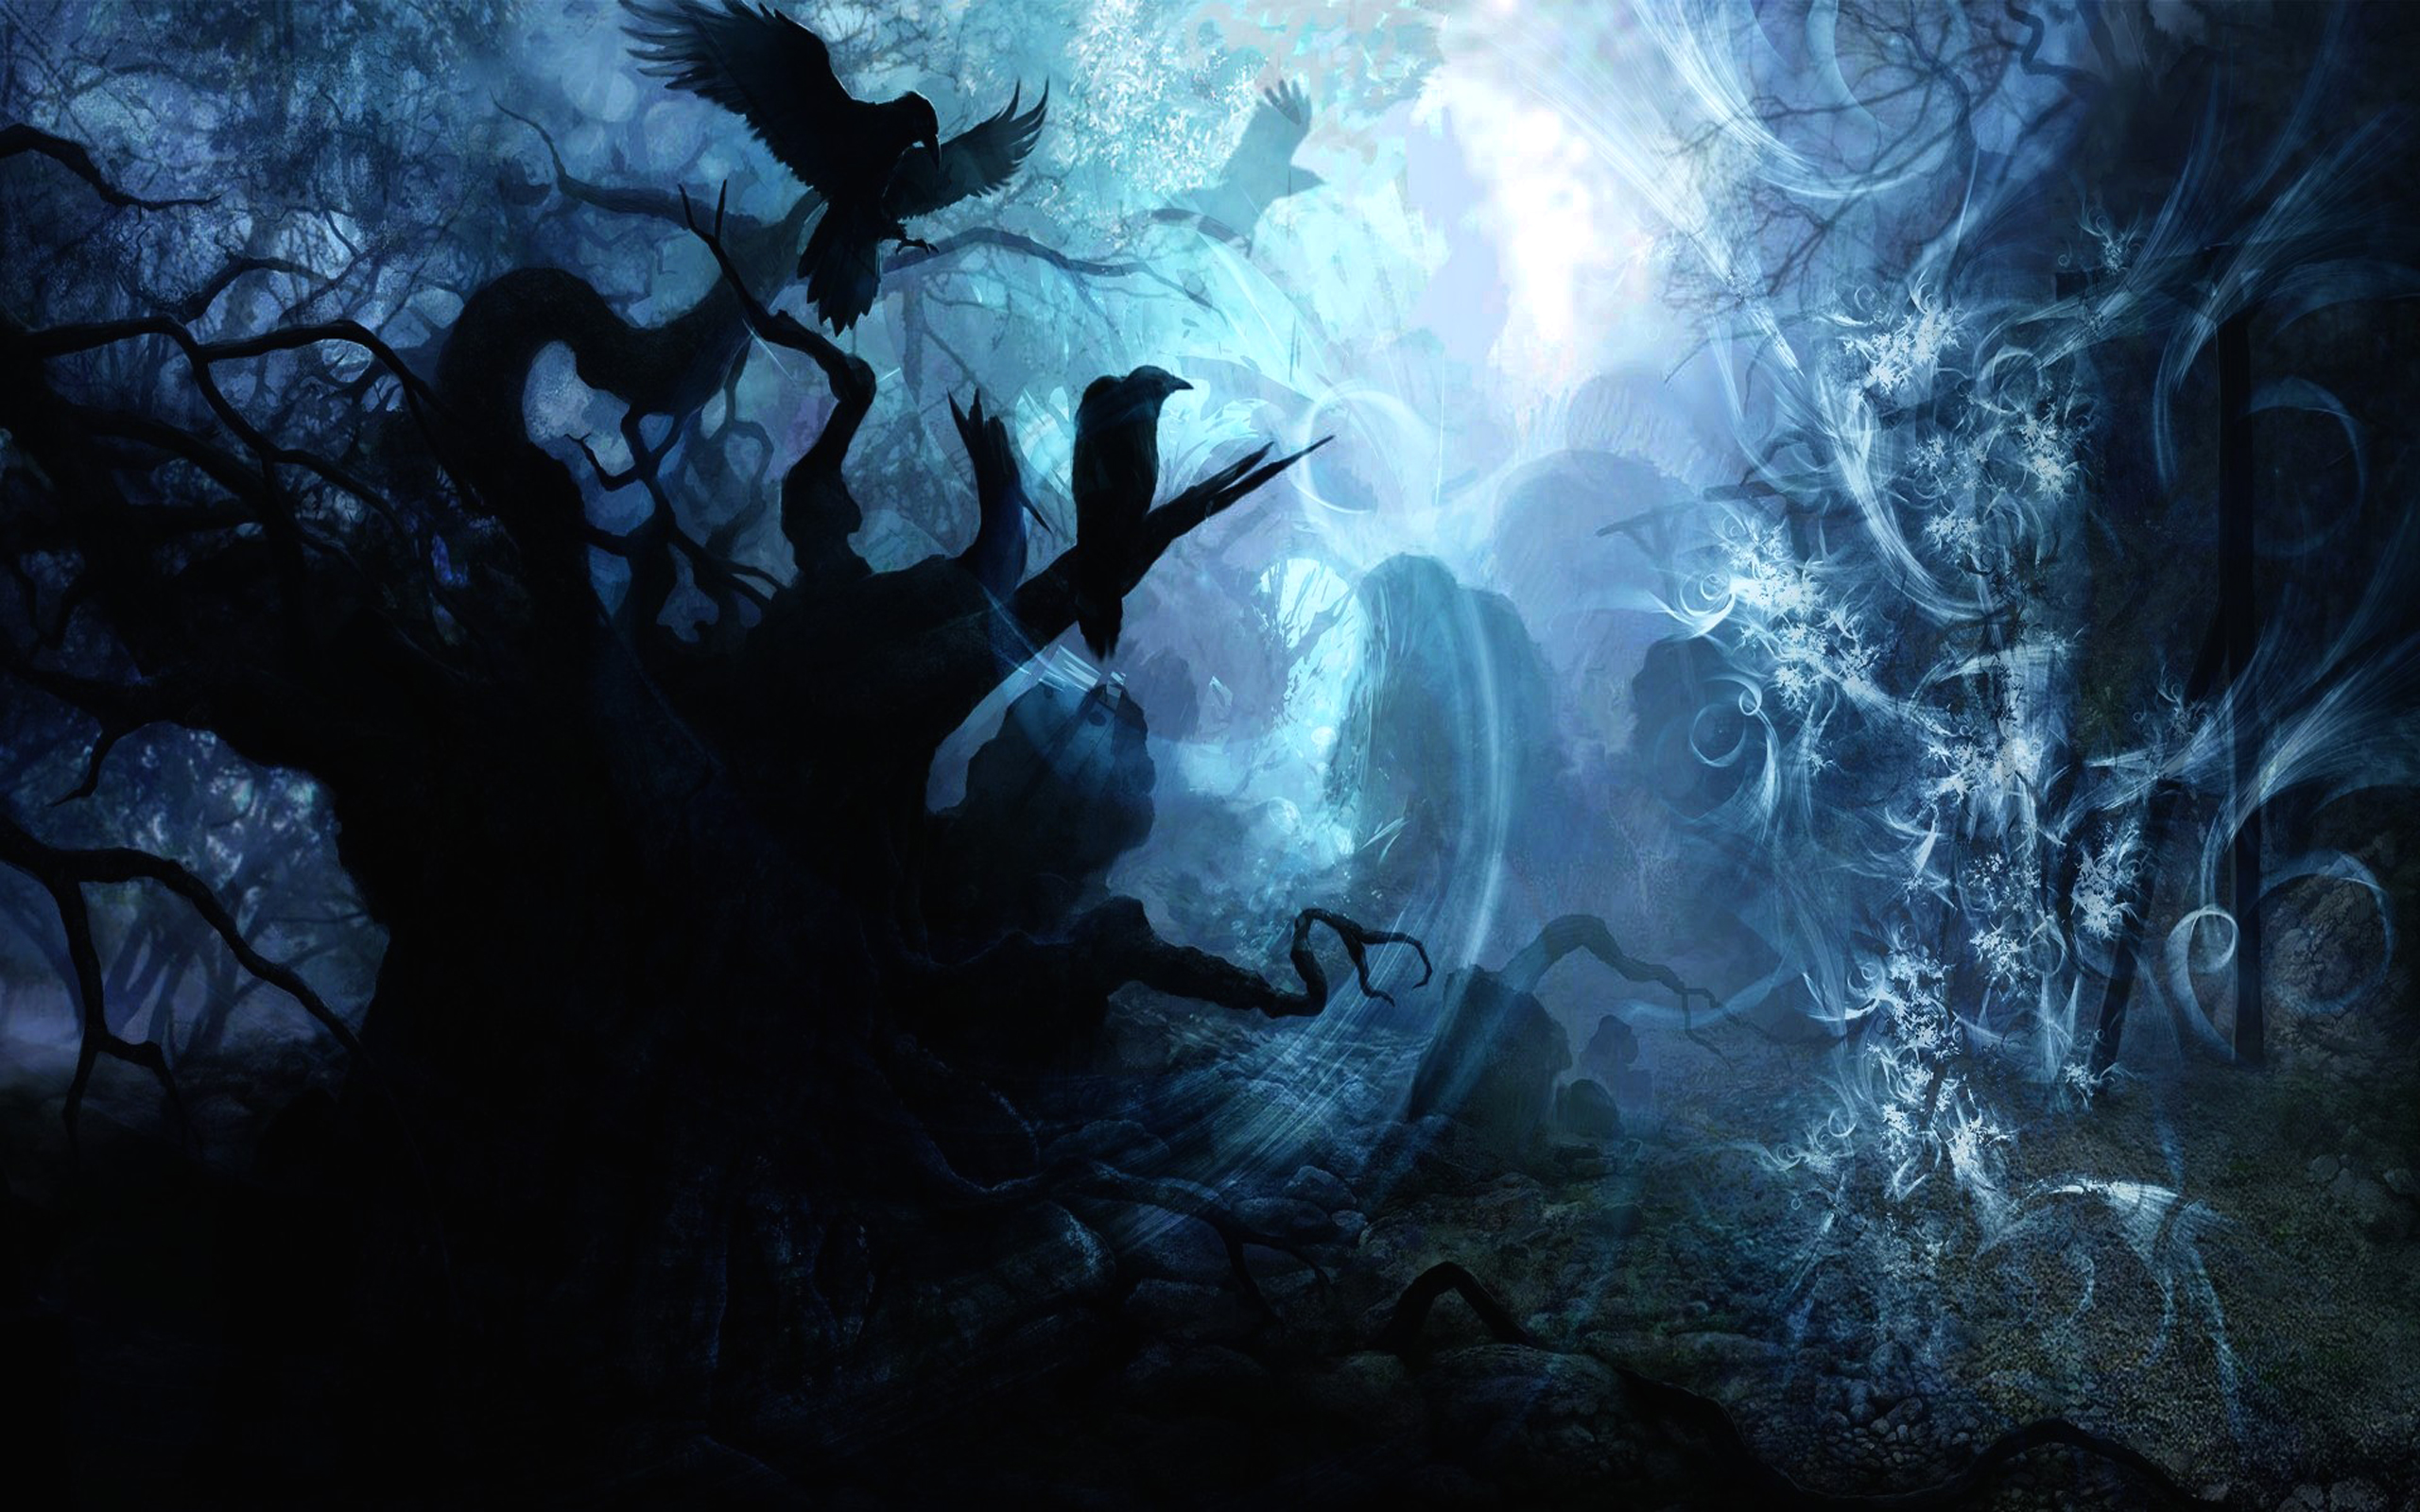 Dark Fantasy Wallpaper For Desktop 2560x1600